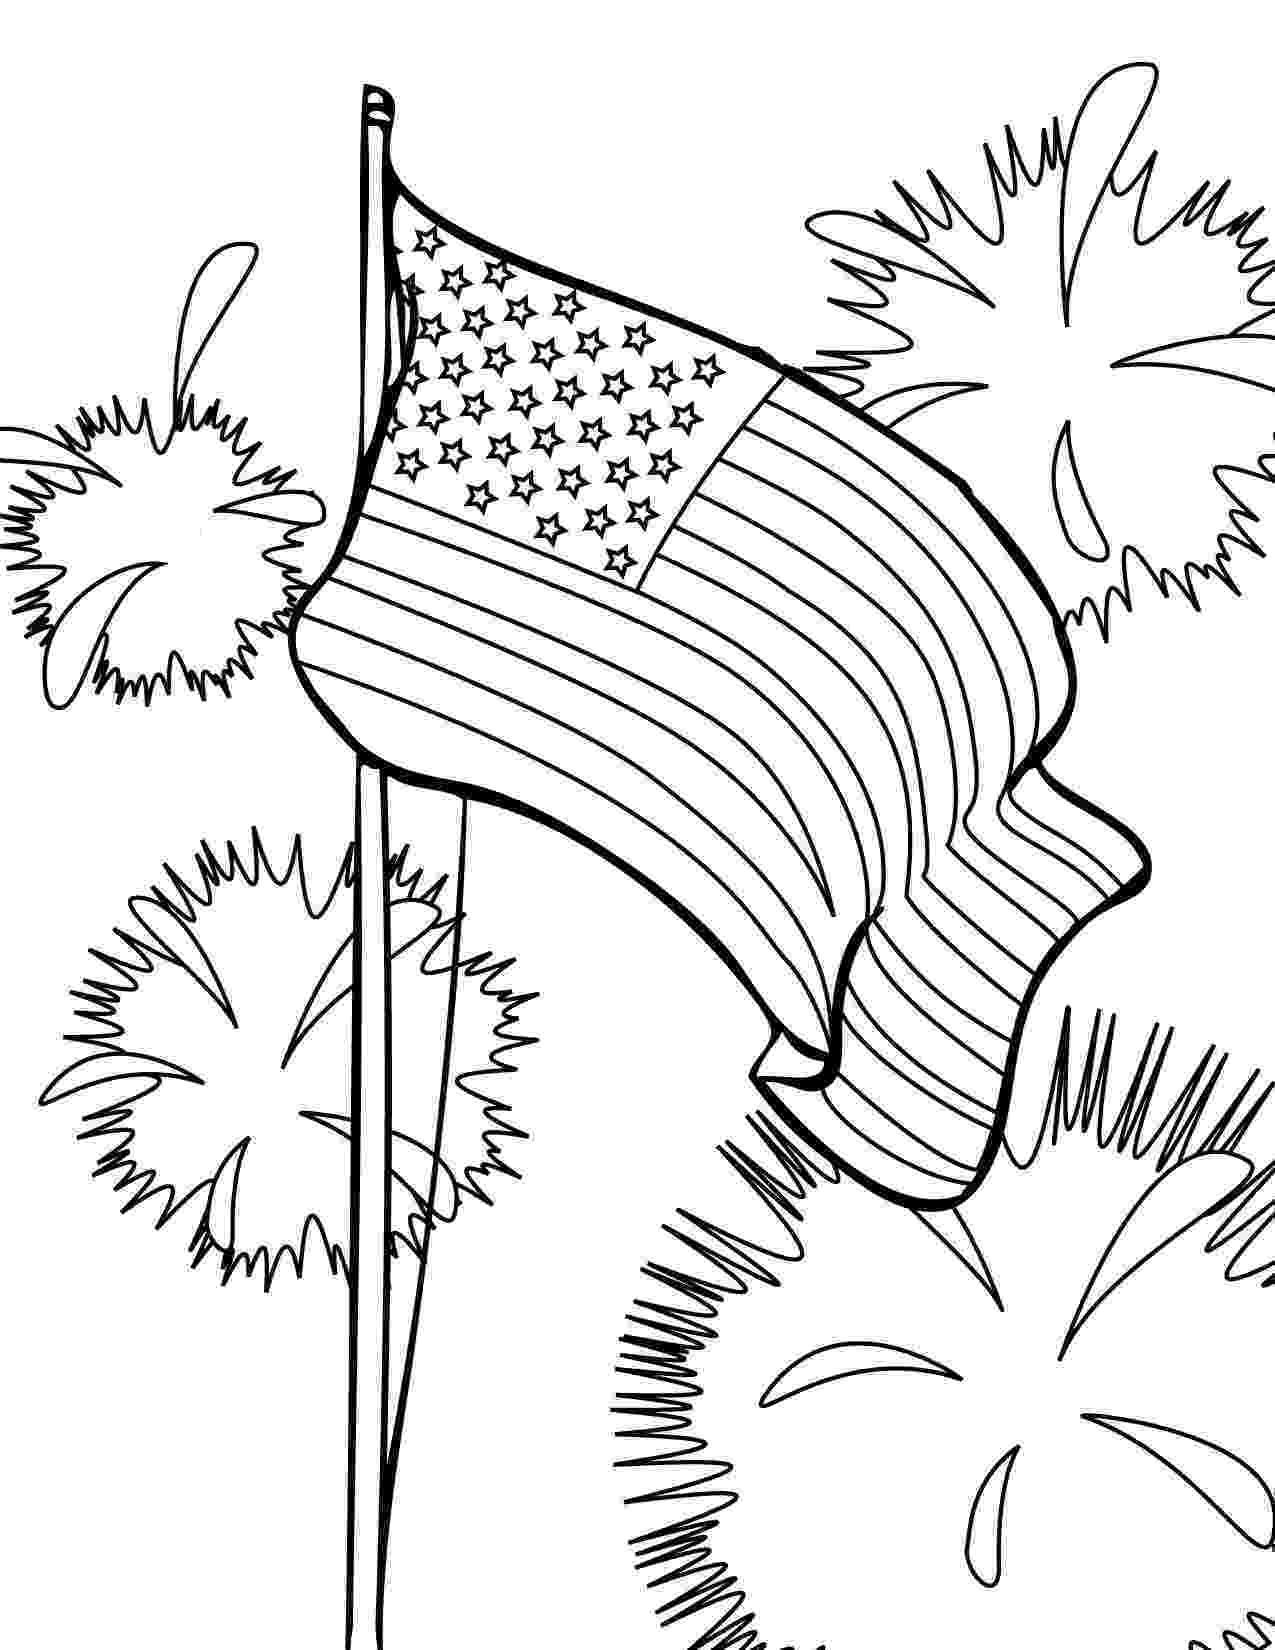 american flag coloring pages free coloring american flags to print coloring american pages flag